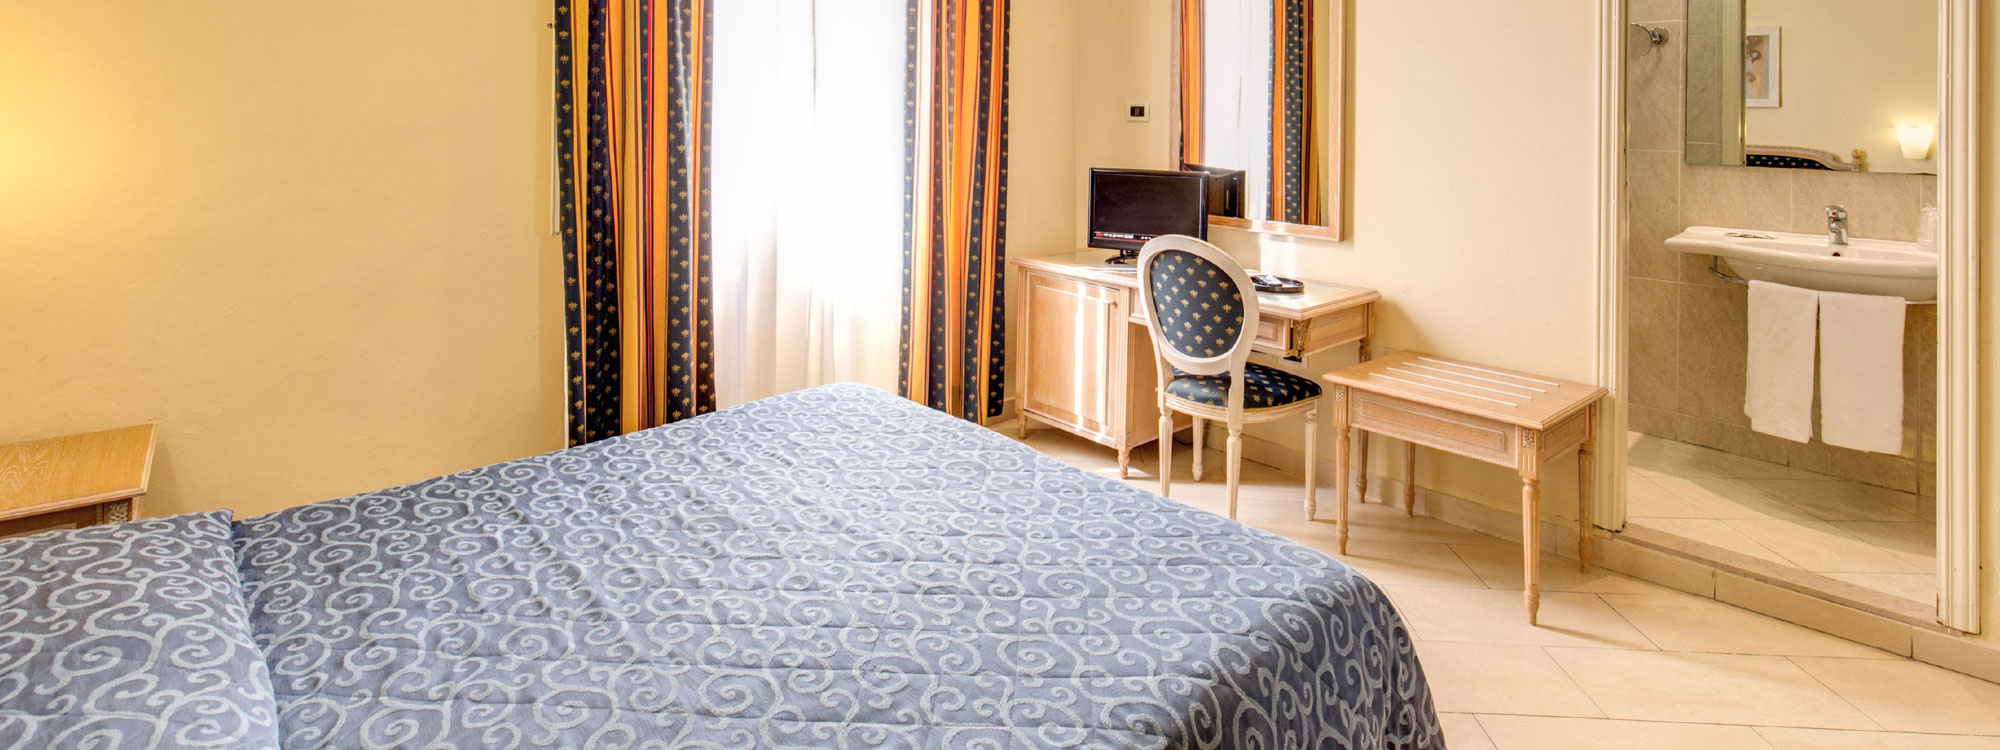 Albergo Firenze Florence Italy Hotel Anna S Florence Official Site Home